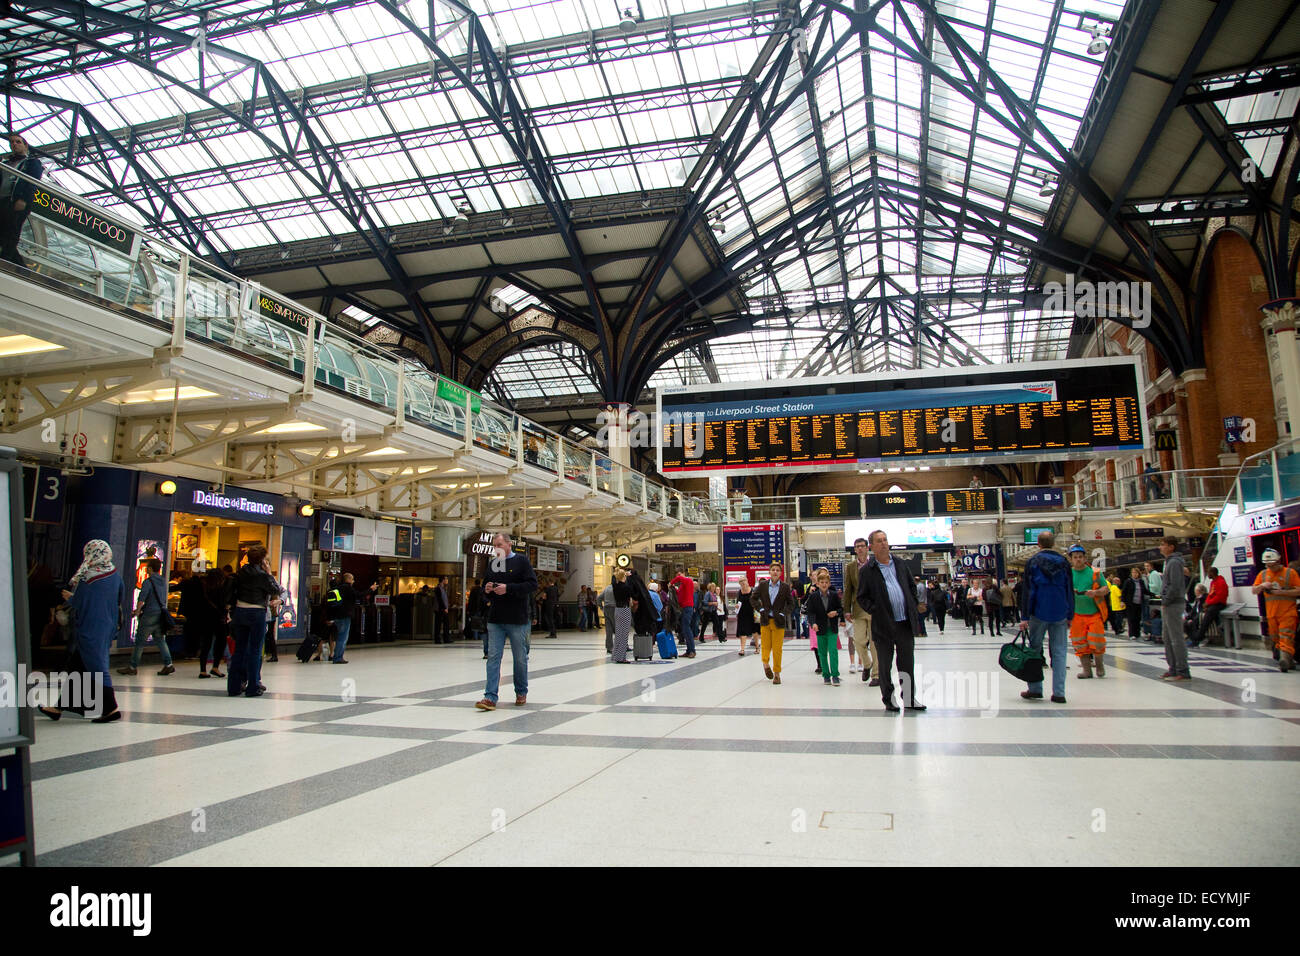 LONDON - OCTOBER 18TH: The interior of Liverpool street station on October 18th, 2014 in London, england, uk. The - Stock Image